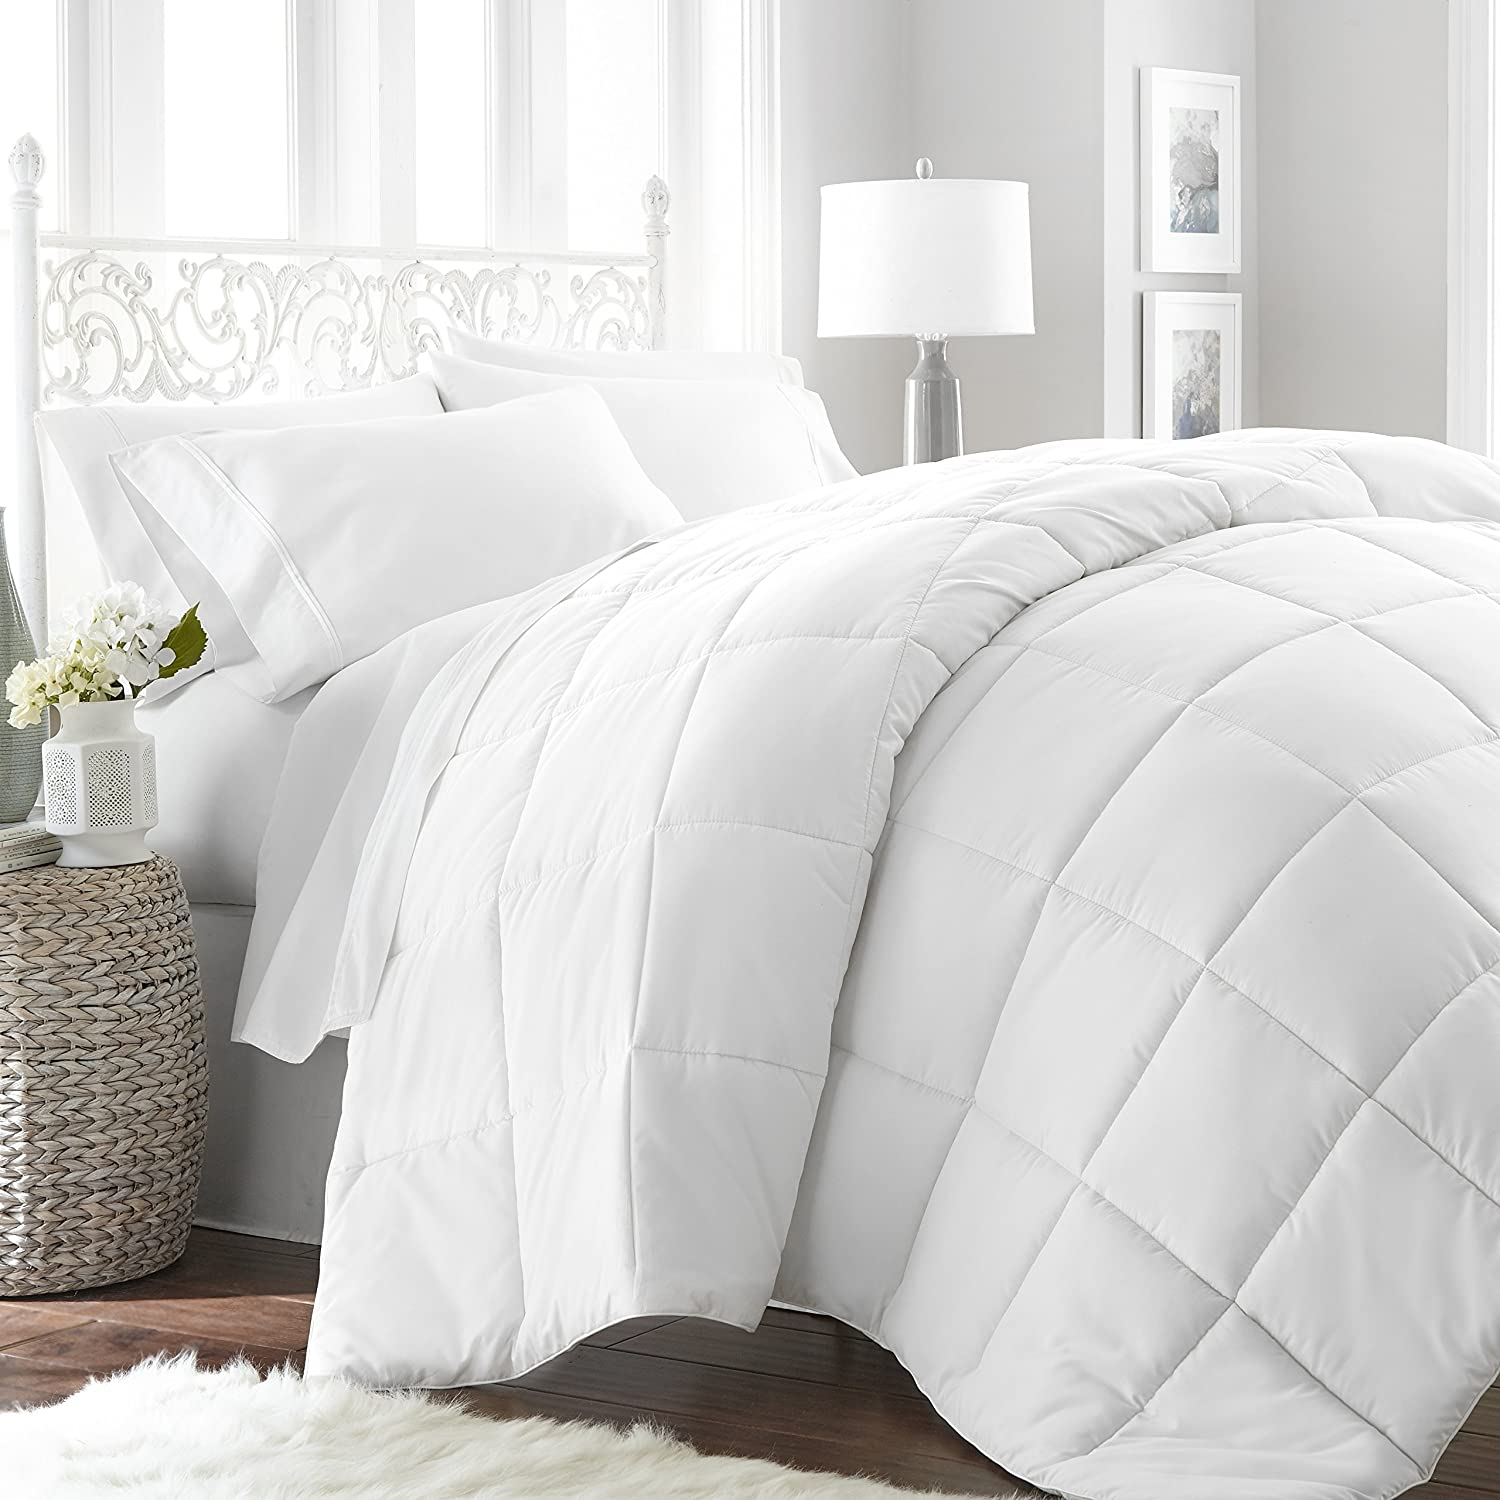 1 Piece White Baffle Box Stitched Down Alternative Comforter King/Cal King Size, Stylish Modern Luxurious Soft Cozy Lightweight Reversible Bedding Solid Color Square Design, Plush Microfiber, Unisex